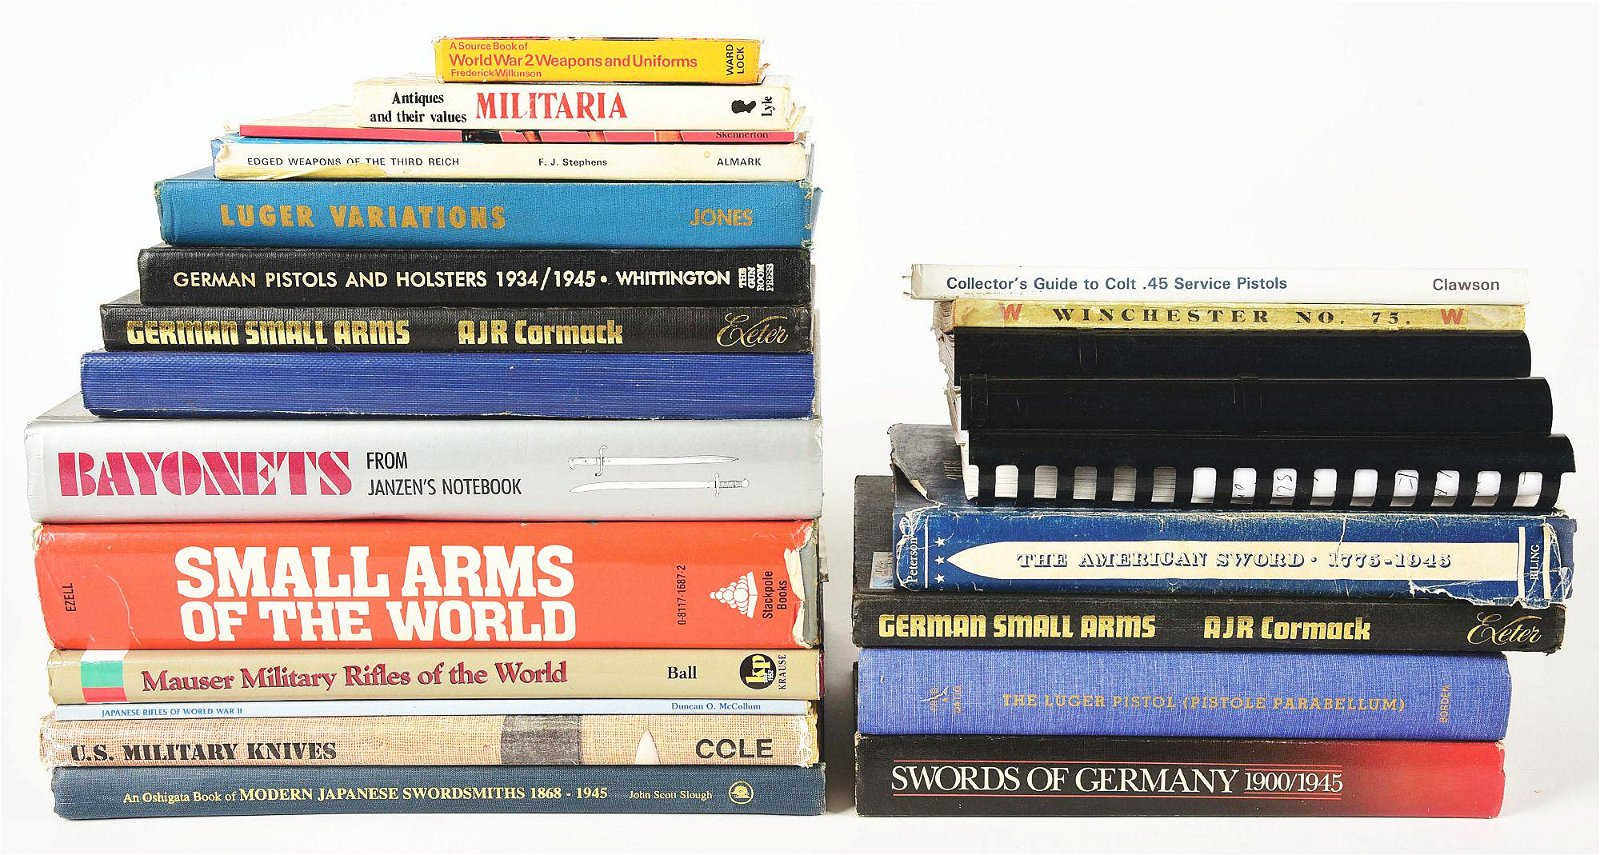 LOT OF 23: FIREARMS AND MILITARIA BOOKS.